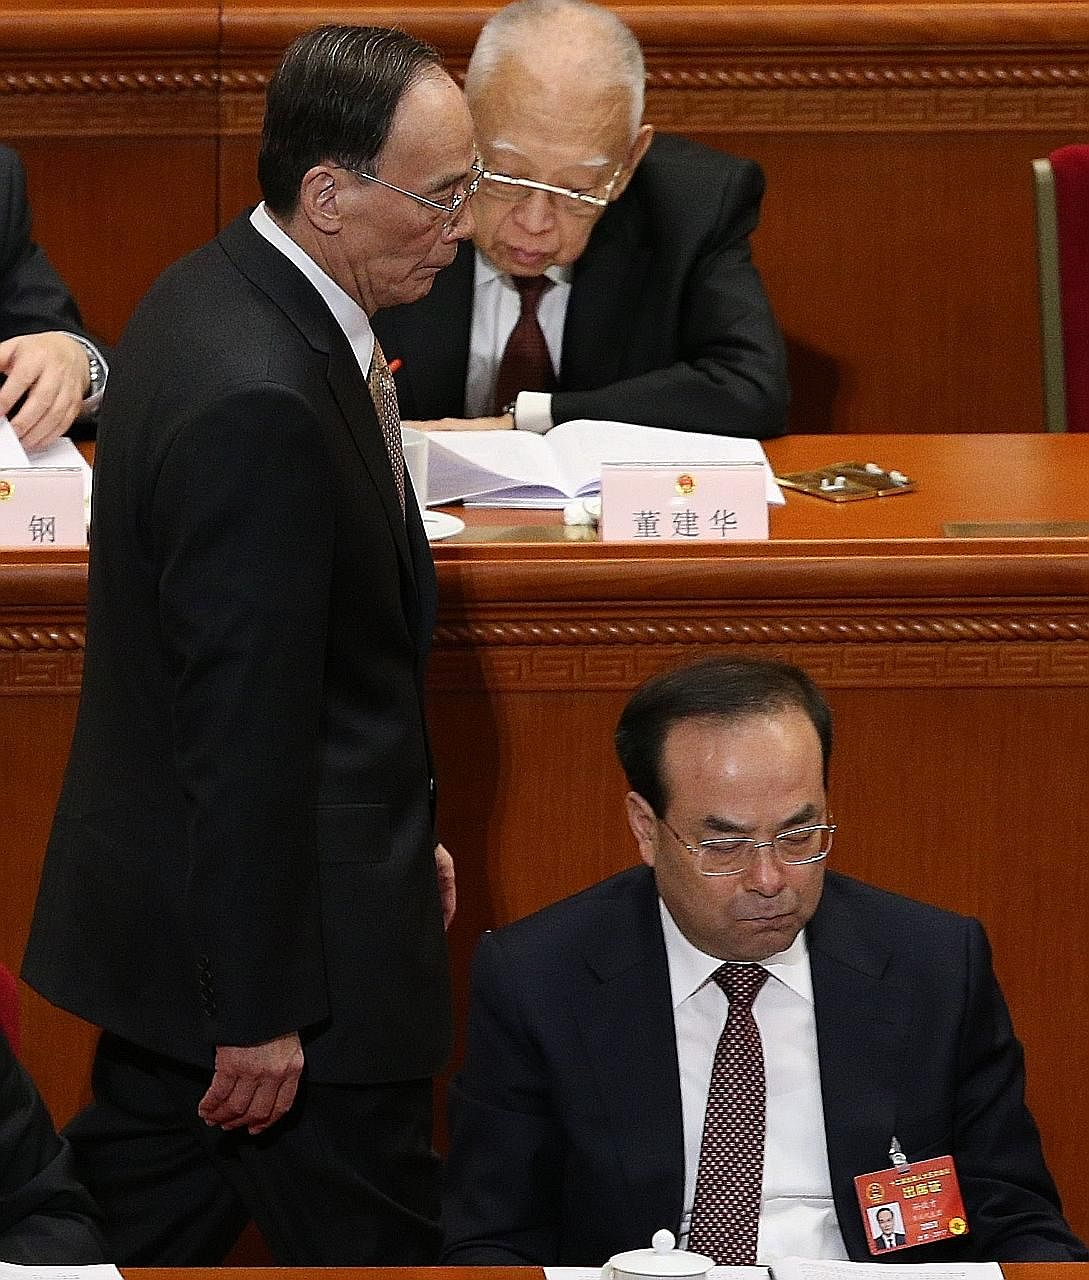 Mr Sun Zhengcai (right), seen in a March file photo, is being investigated by the Central Commission for Discipline Inspection, whose chief is Mr Wang Qishan (left).